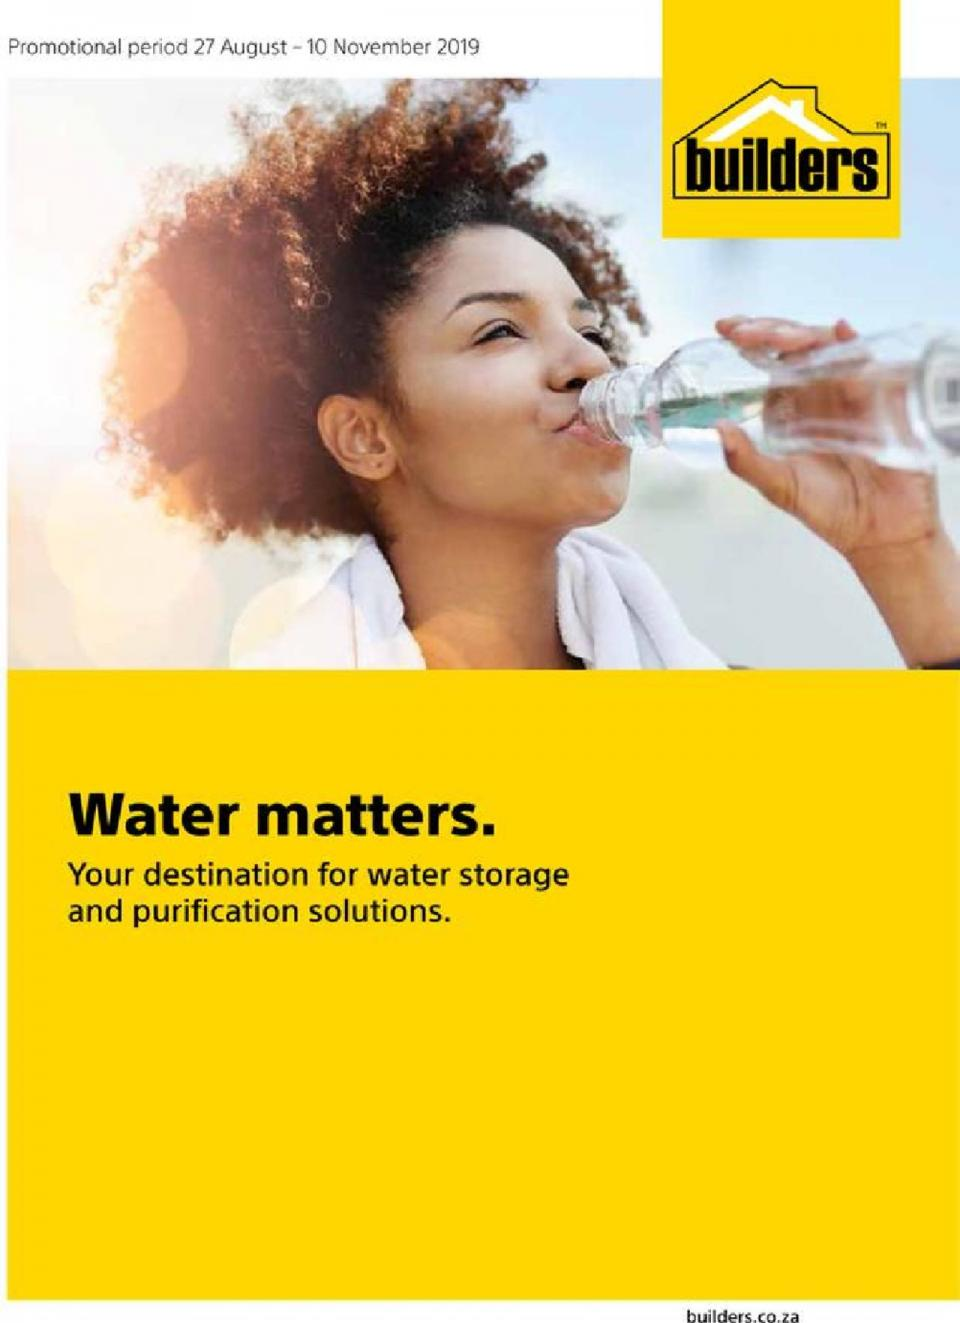 builders warehouse water matters 27 august 2019